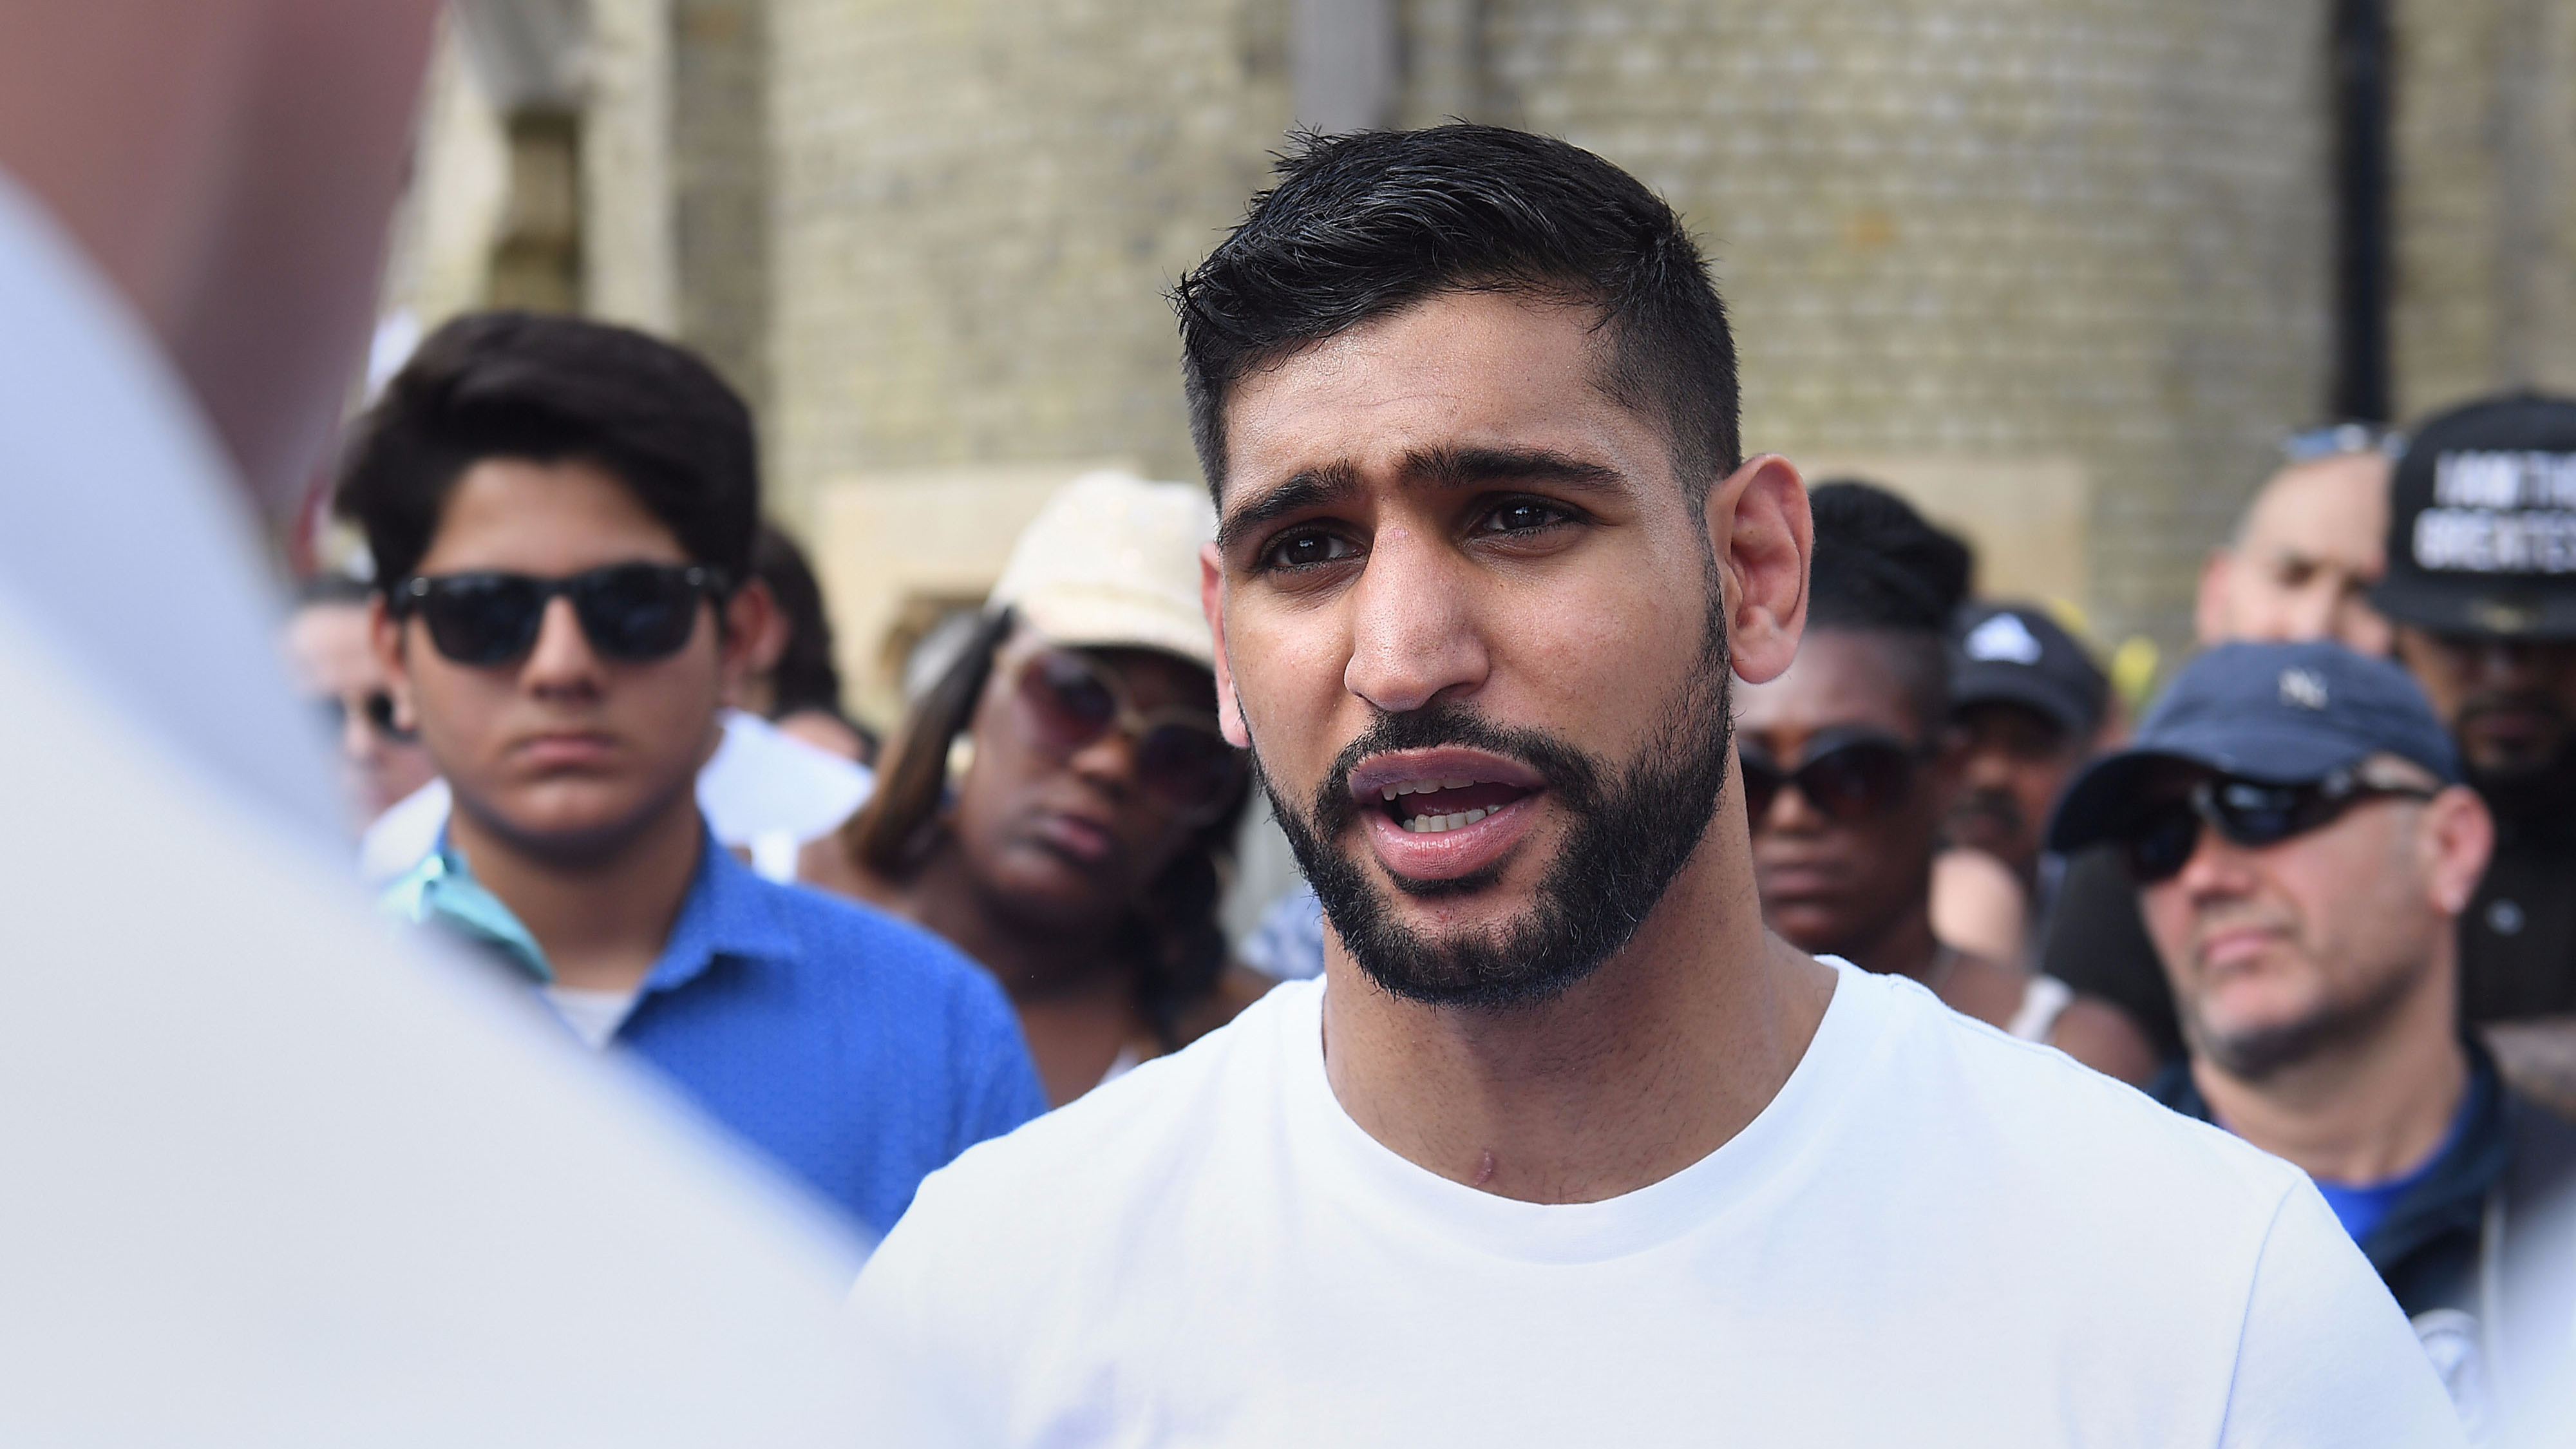 Amir Khan Caught Saying 'I'm A Celeb' Is For 'Has Beens' As He Joins Jungle